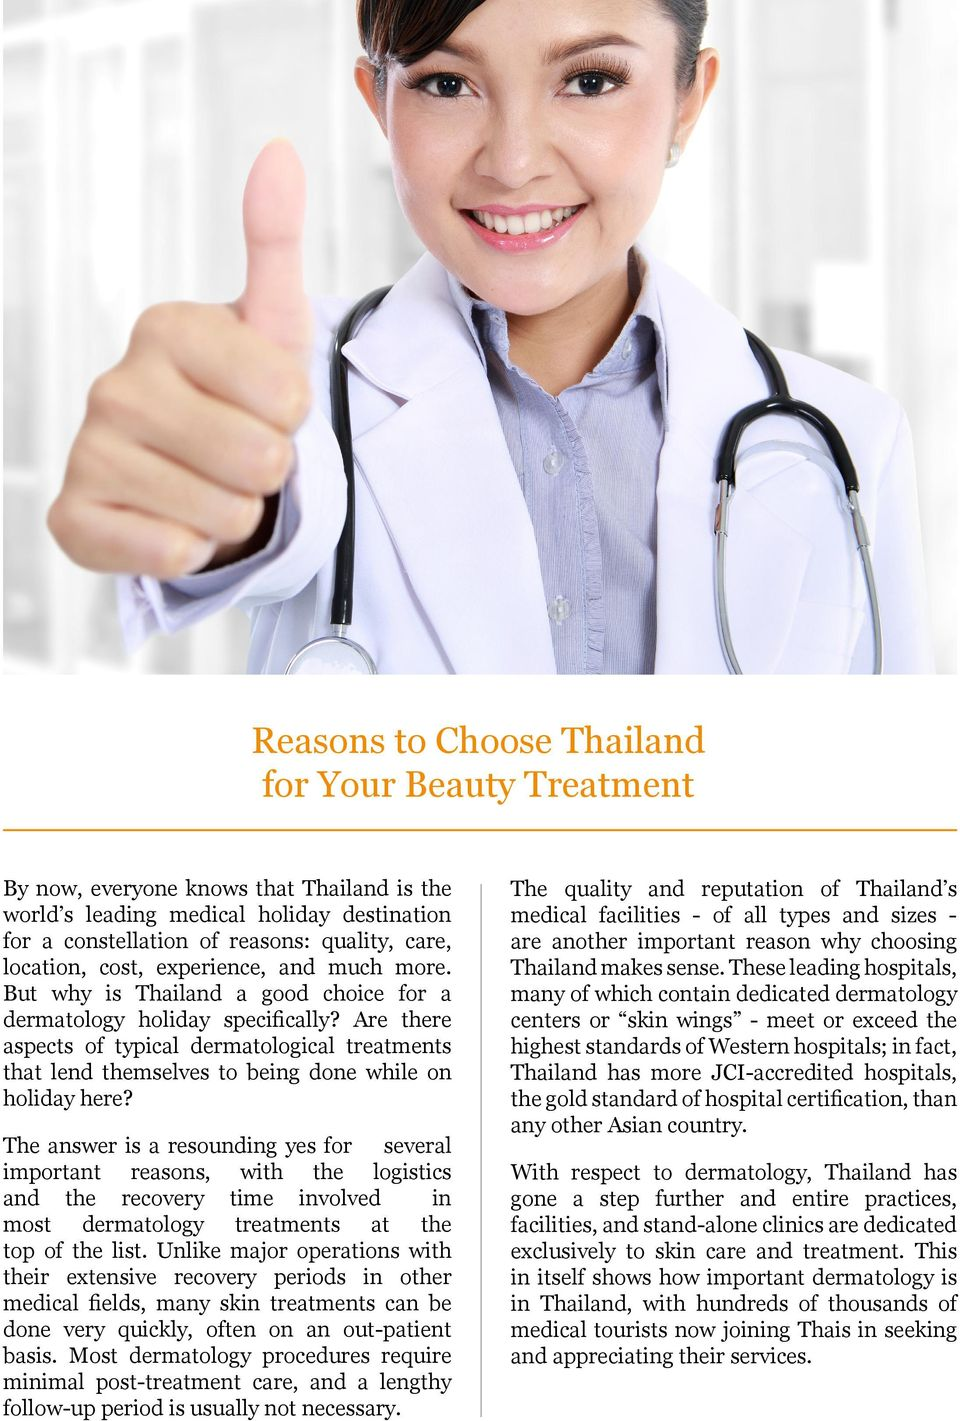 The Secret to Your Youthful Skin: A Thailand Medical Holiday